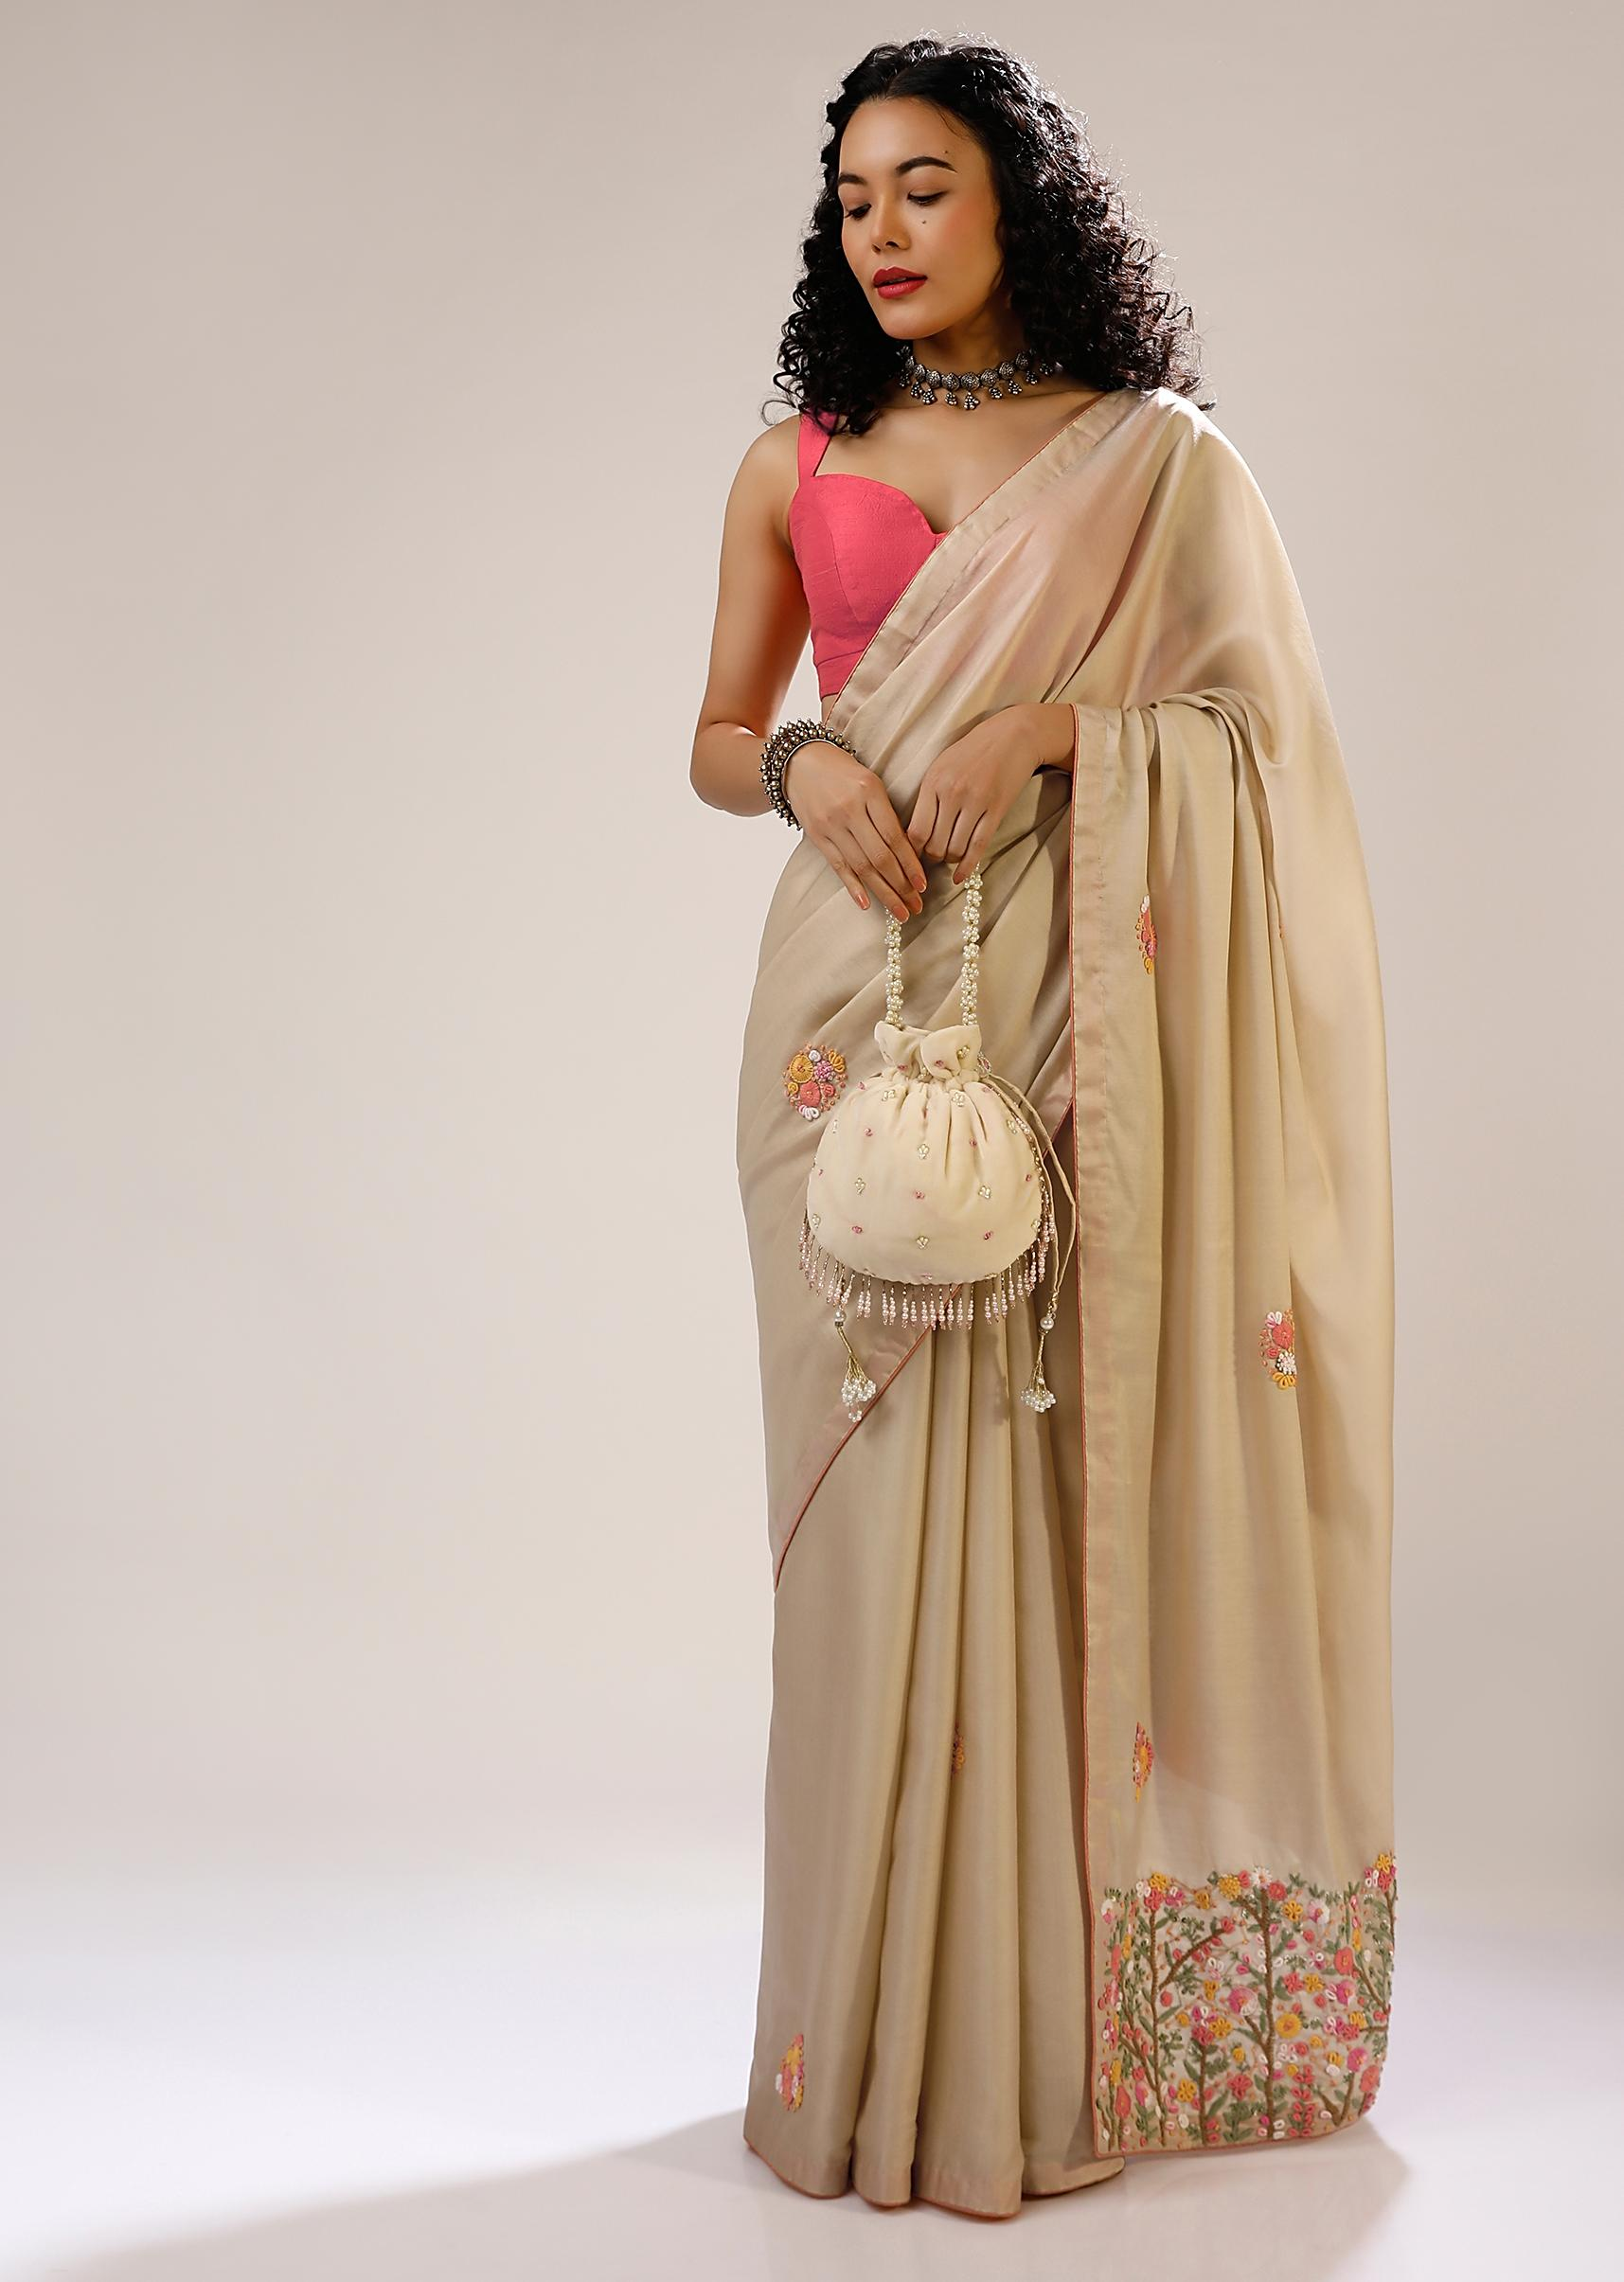 Creme Brulee Saree In Dupion Silk With Multi Colored Bud Embroidered Floral Buttis And Heavy Pallu Design Online - Kalki Fashion